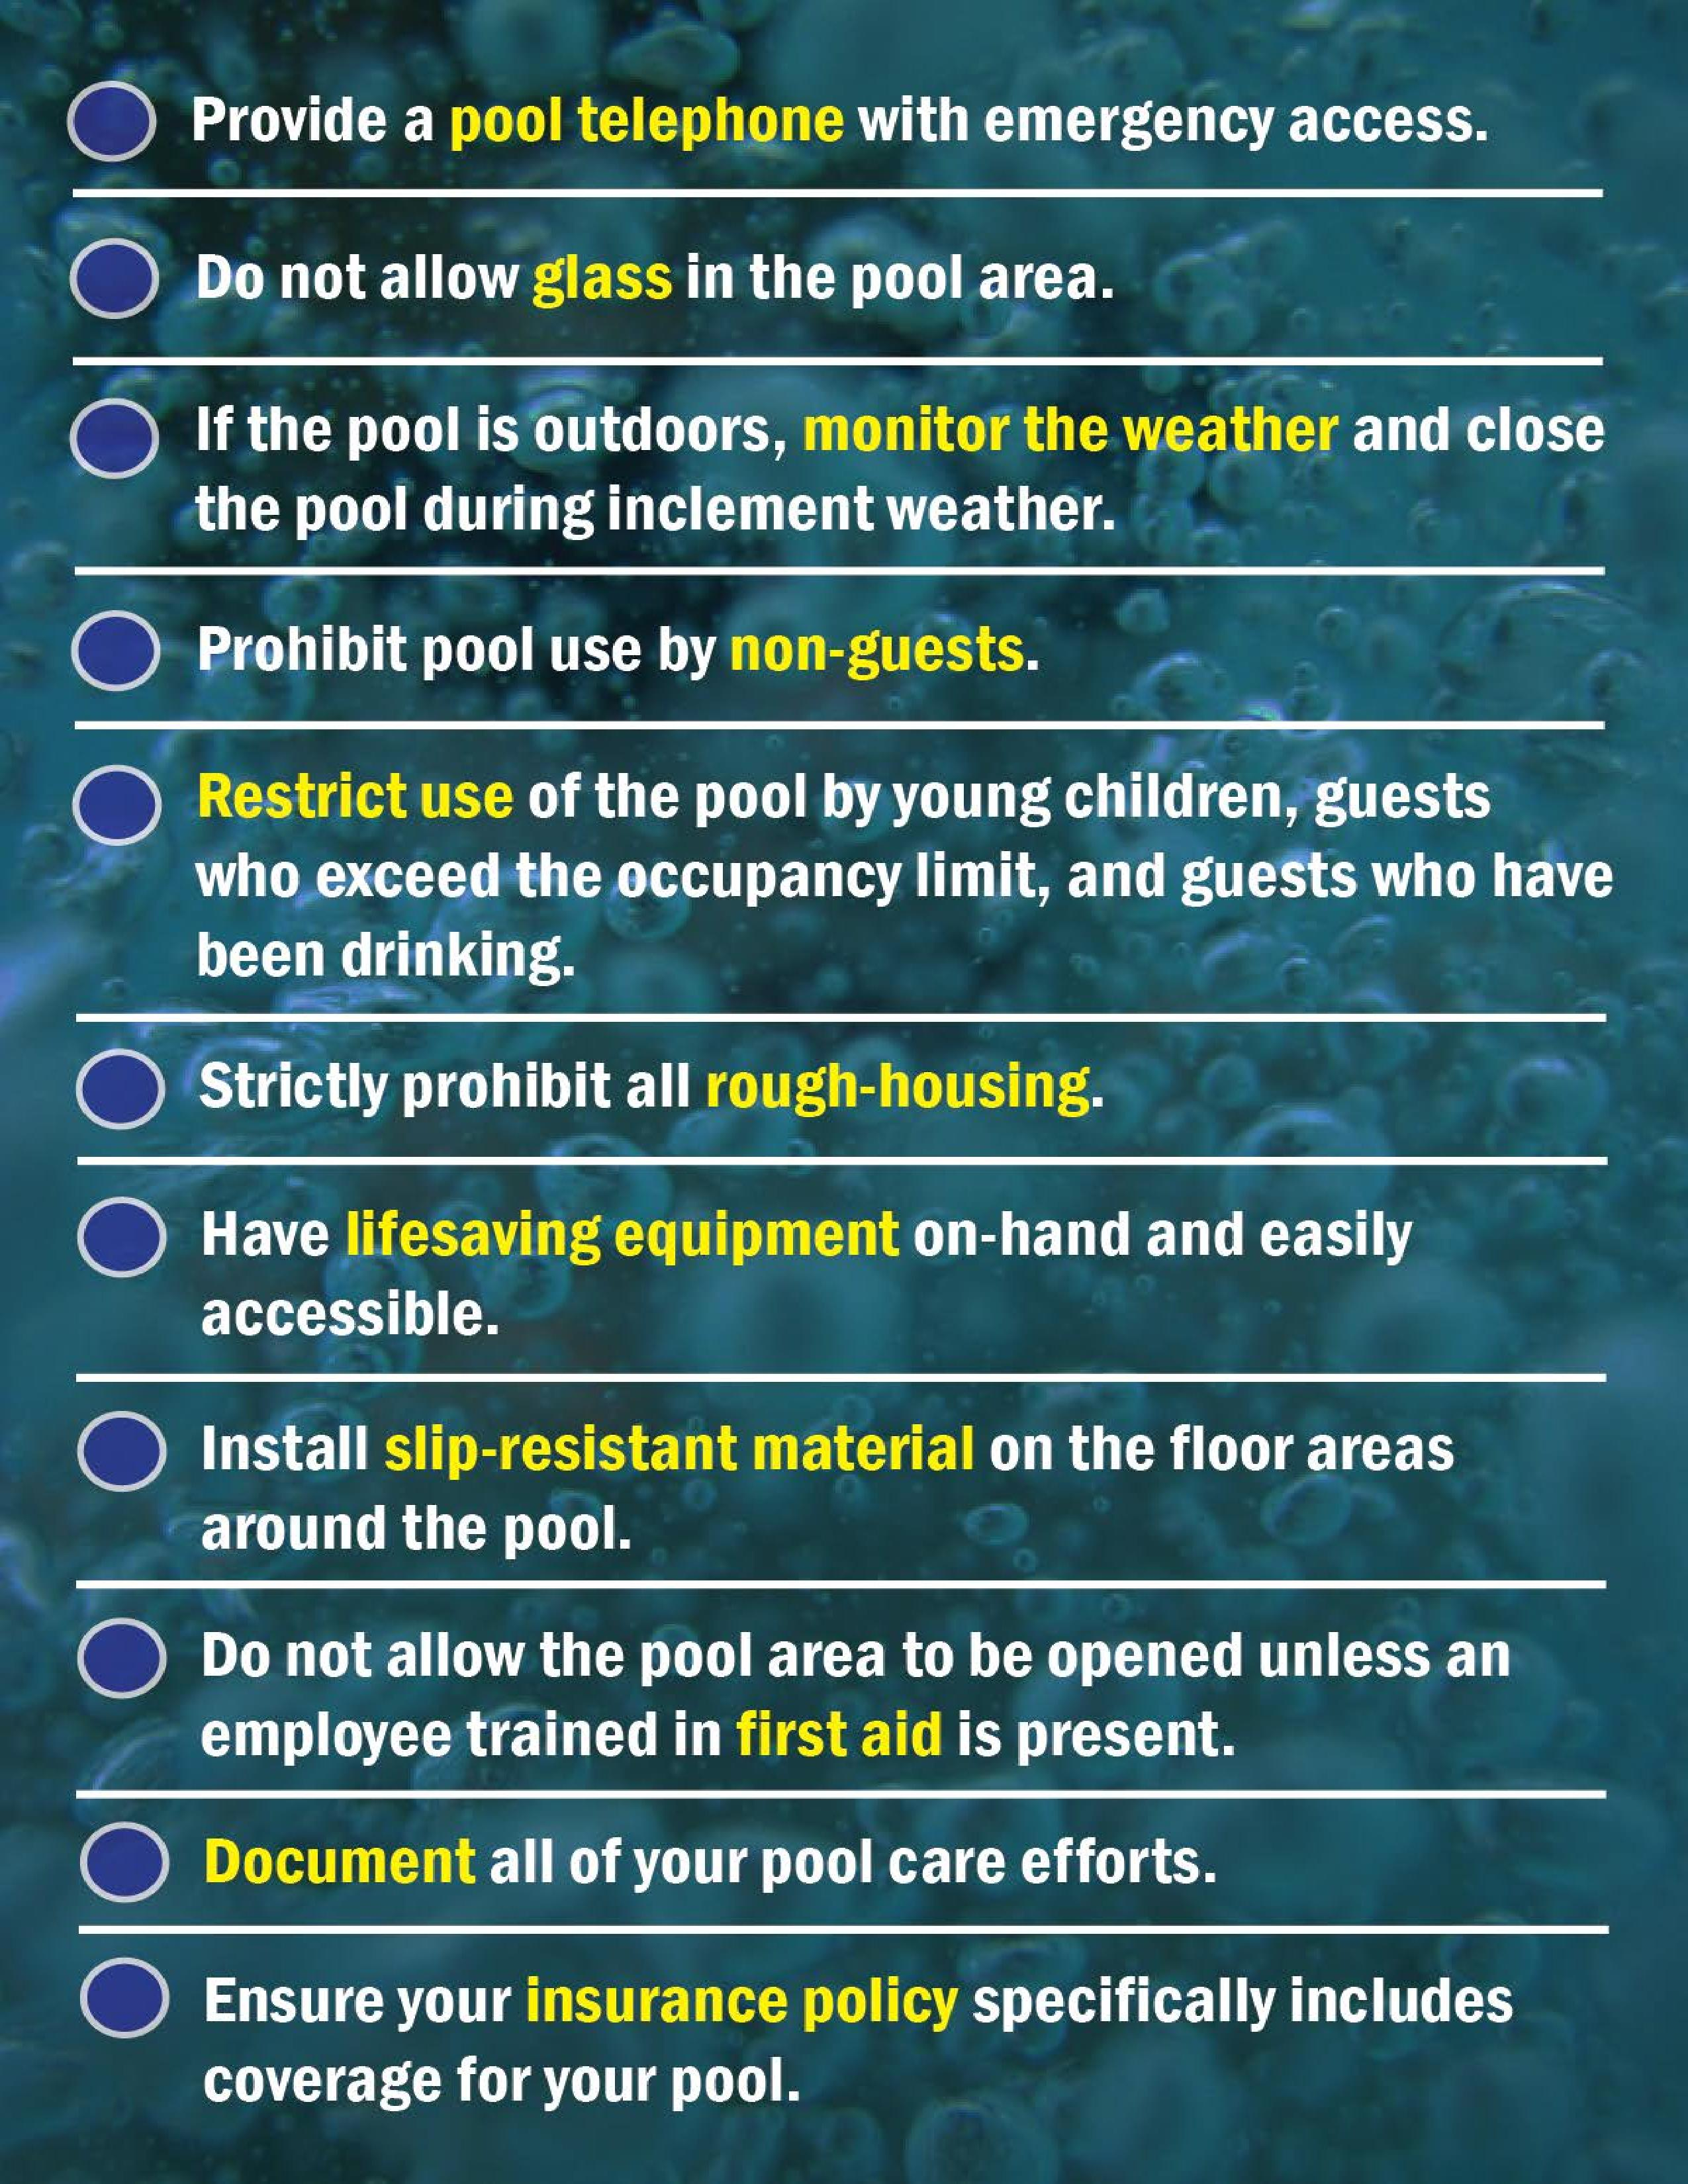 Pool safety archives hospitality risk solutions - Commercial swimming pool safety equipment ...